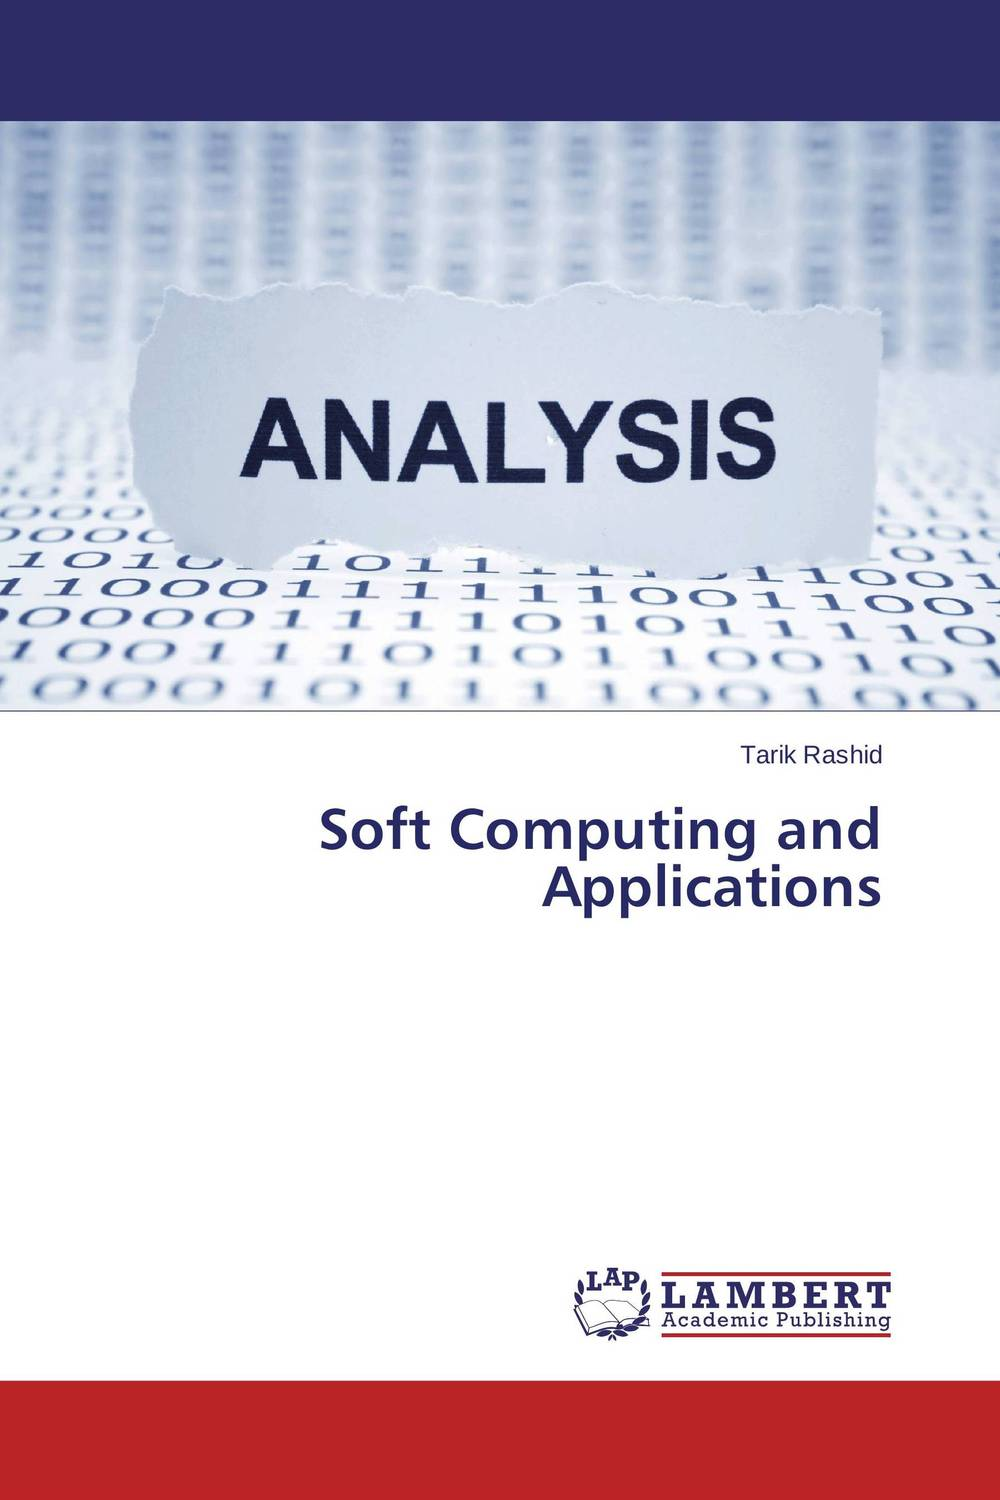 Soft Computing and Applications soft computing and applications